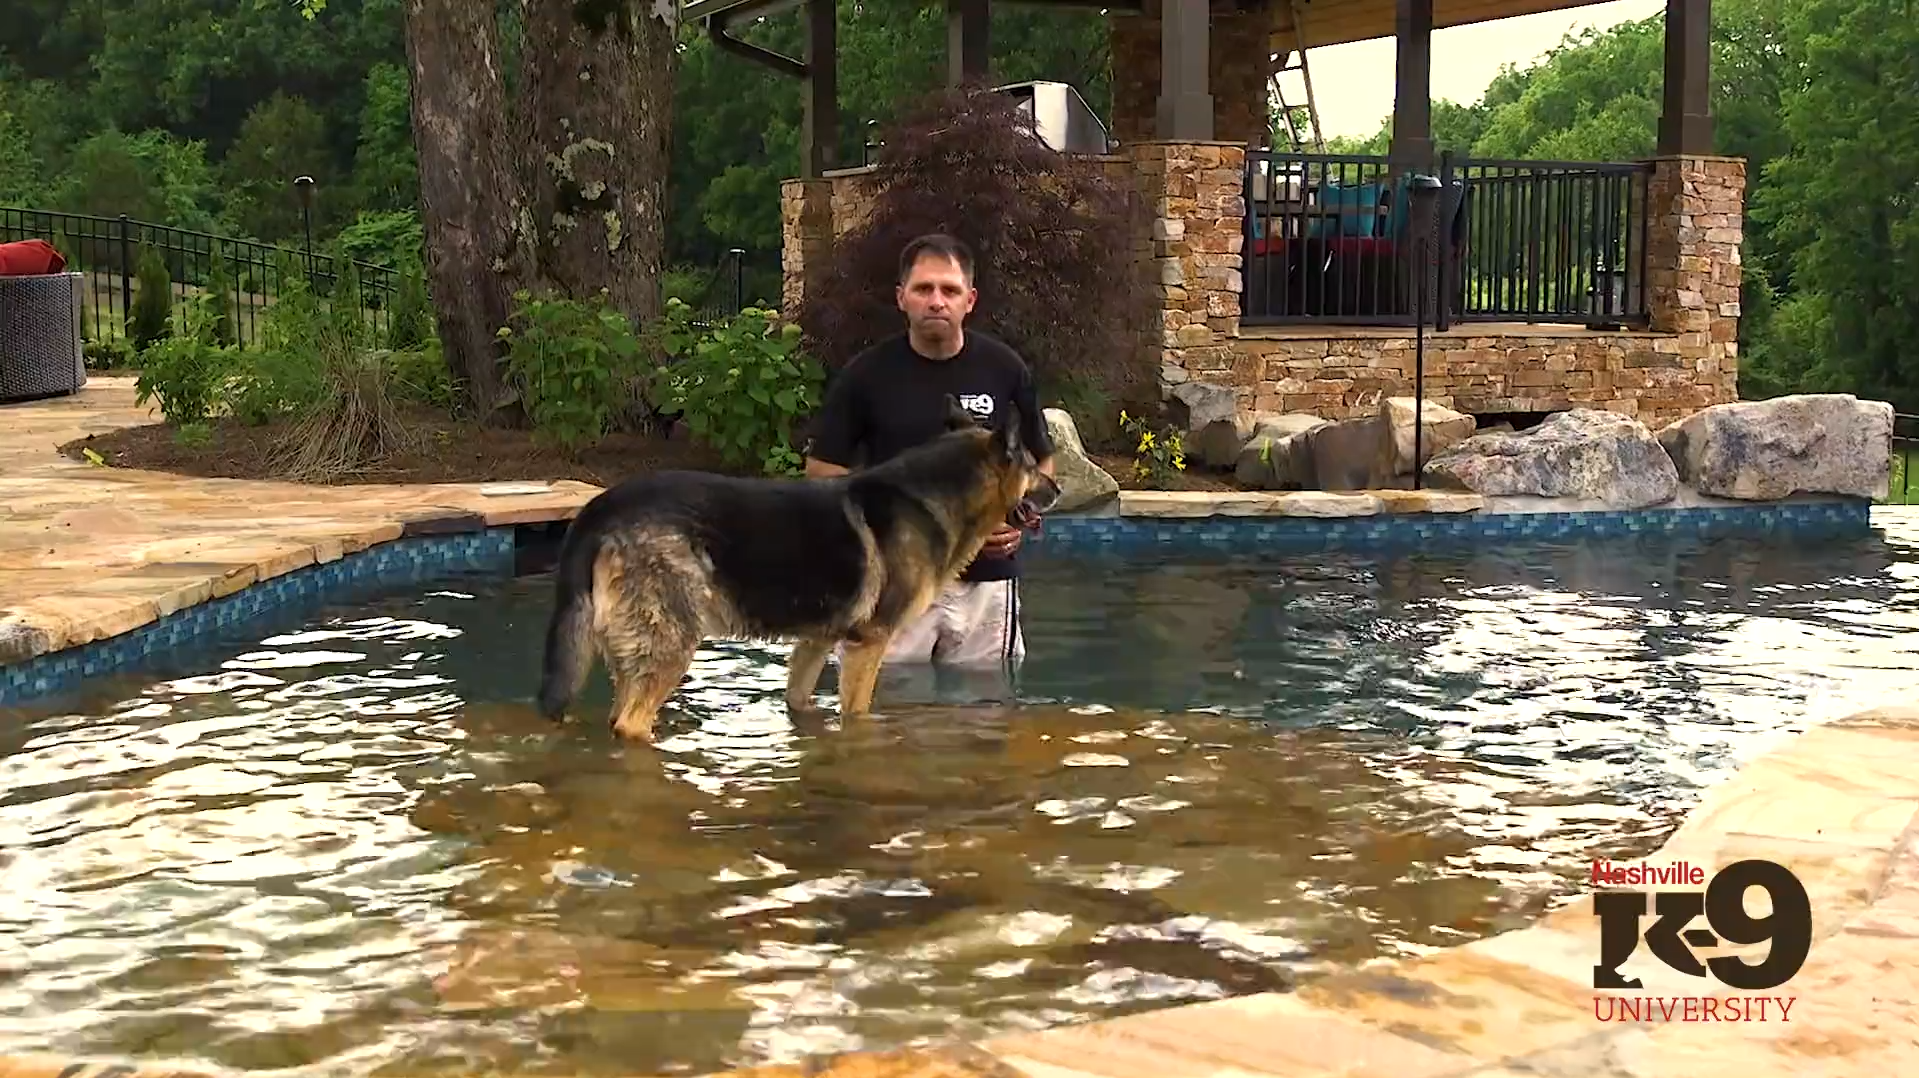 Introducing your dog to swimming – Getting acclimated to water